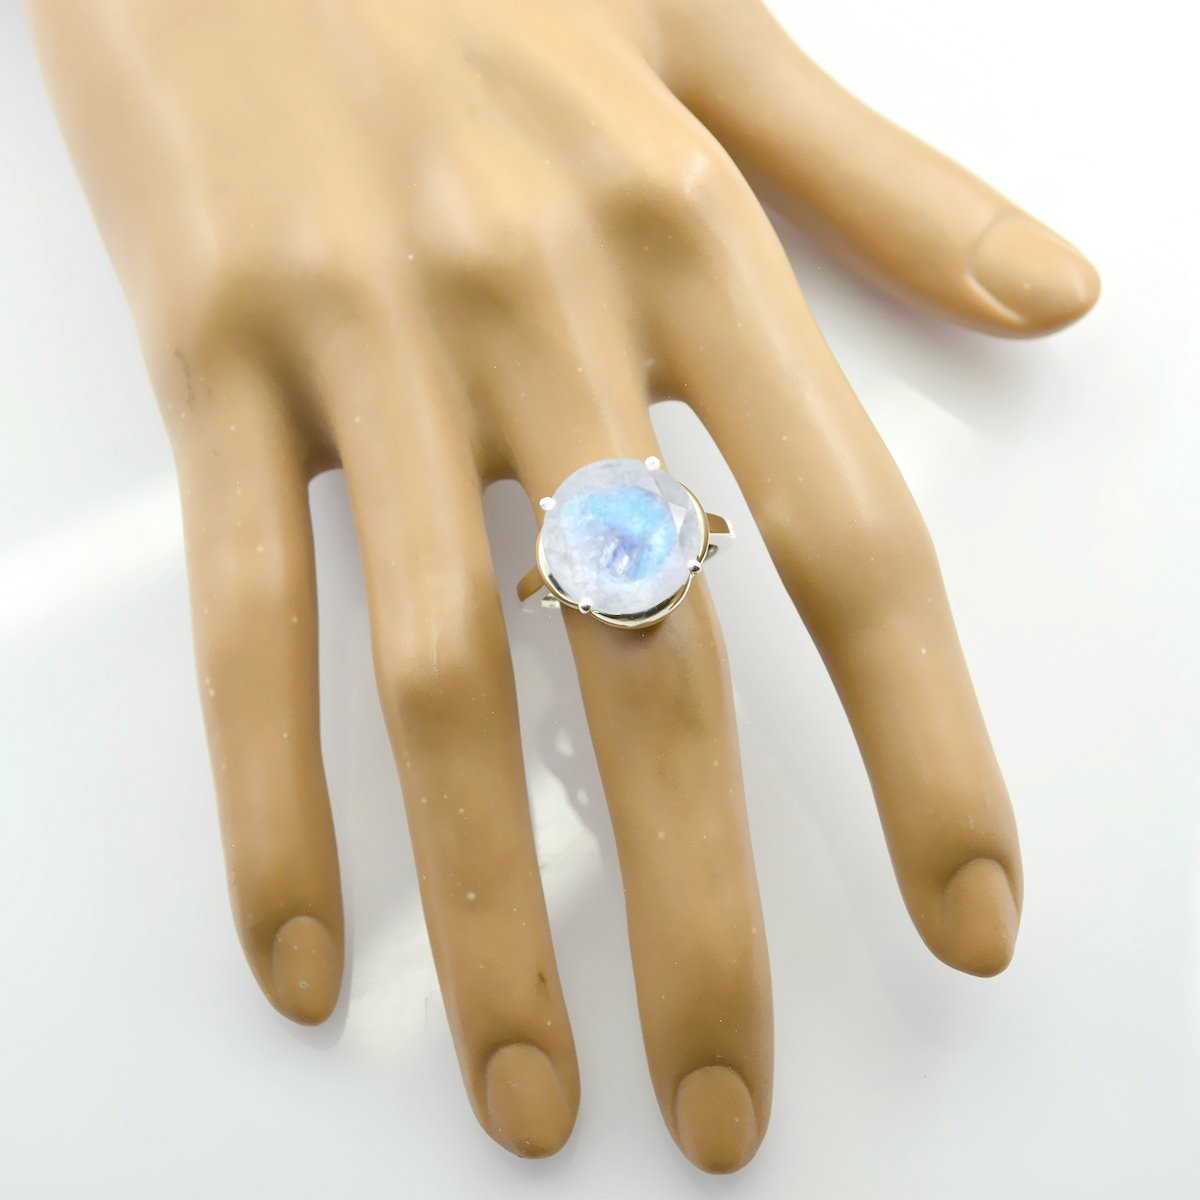 925 Sterling Silver White Rainbow Moonstone Real Gemstones Ring Real Gemstones Round Faceted Rainbow Moonstone Ring Great Jewelry Greatest Item Gift for Friend